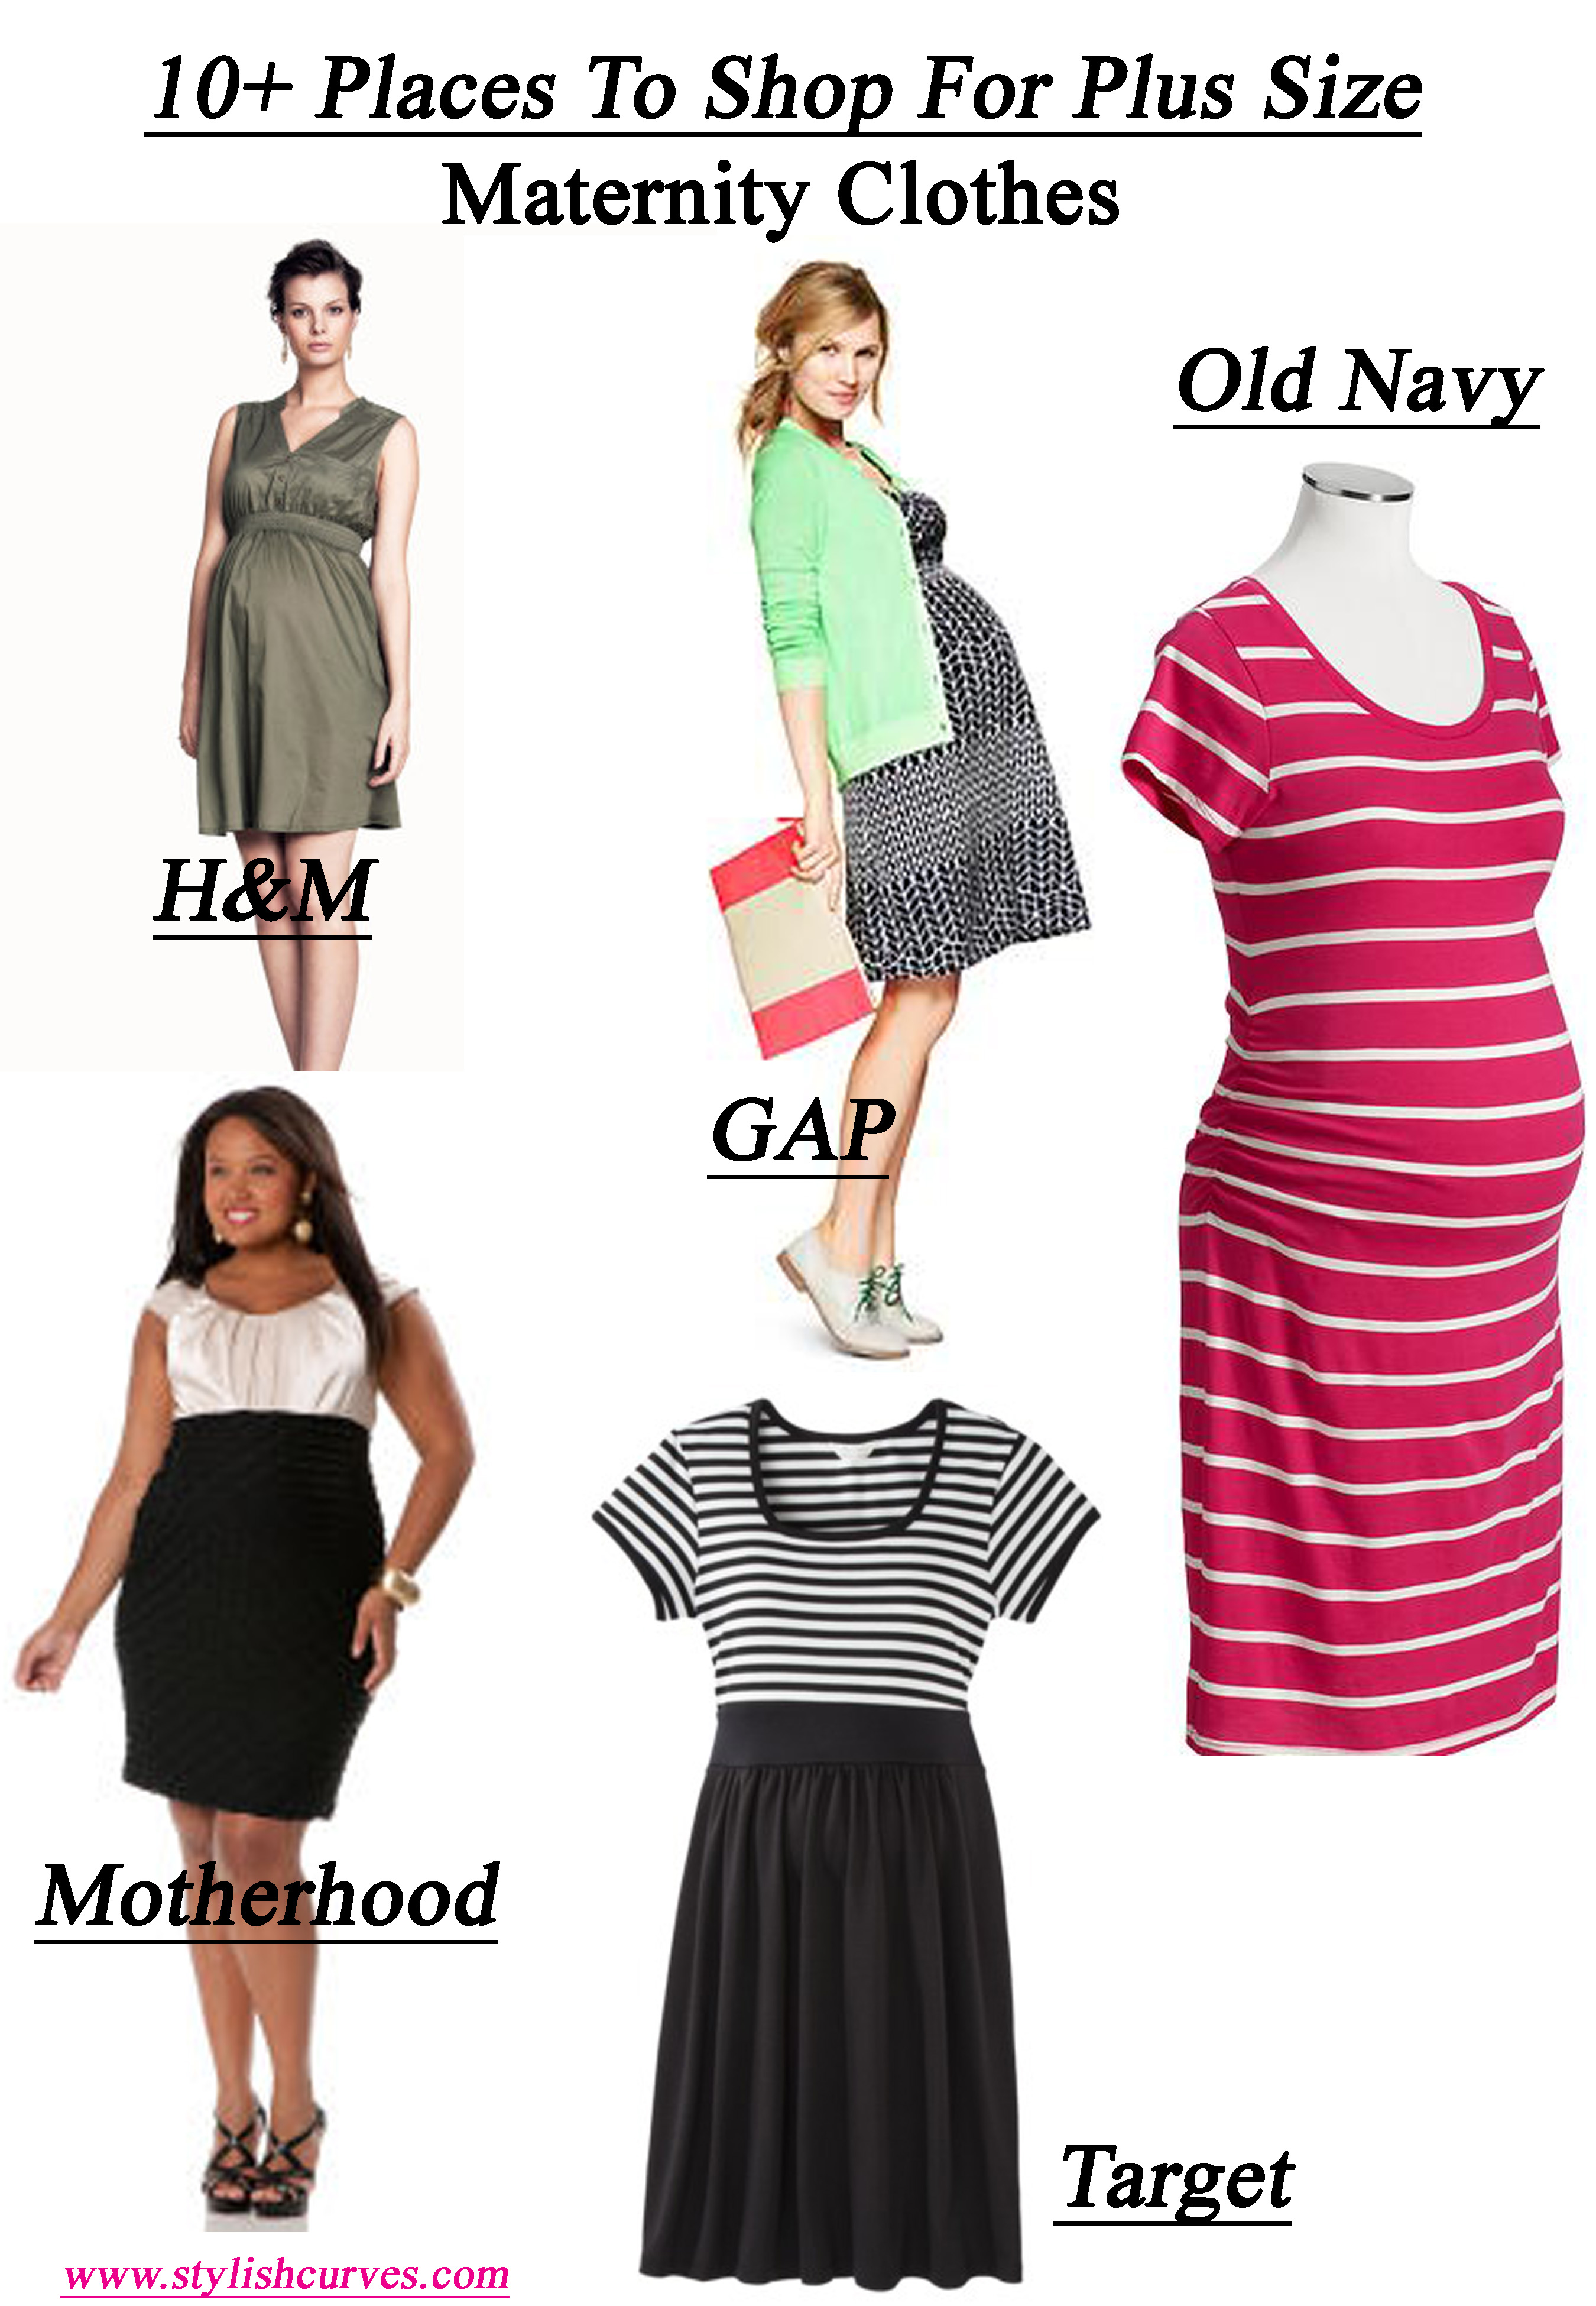 10+ PLACES TO SHOP FOR STYLISH PLUS SIZE MATERNITY CLOTHES | Stylish ...